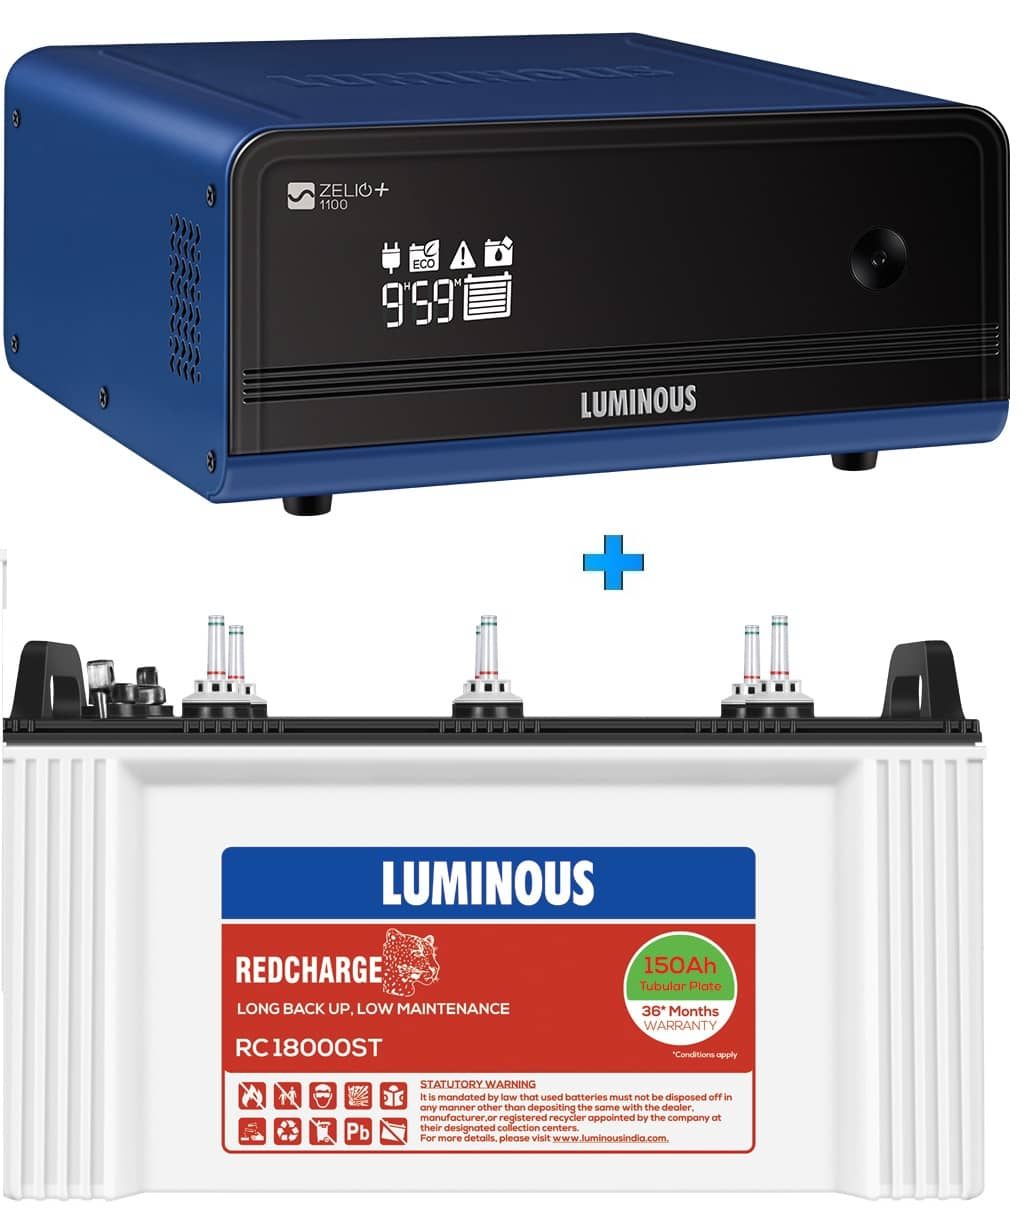 LUMINOUS ZELIO+ 1100 + RC18000ST 150AH